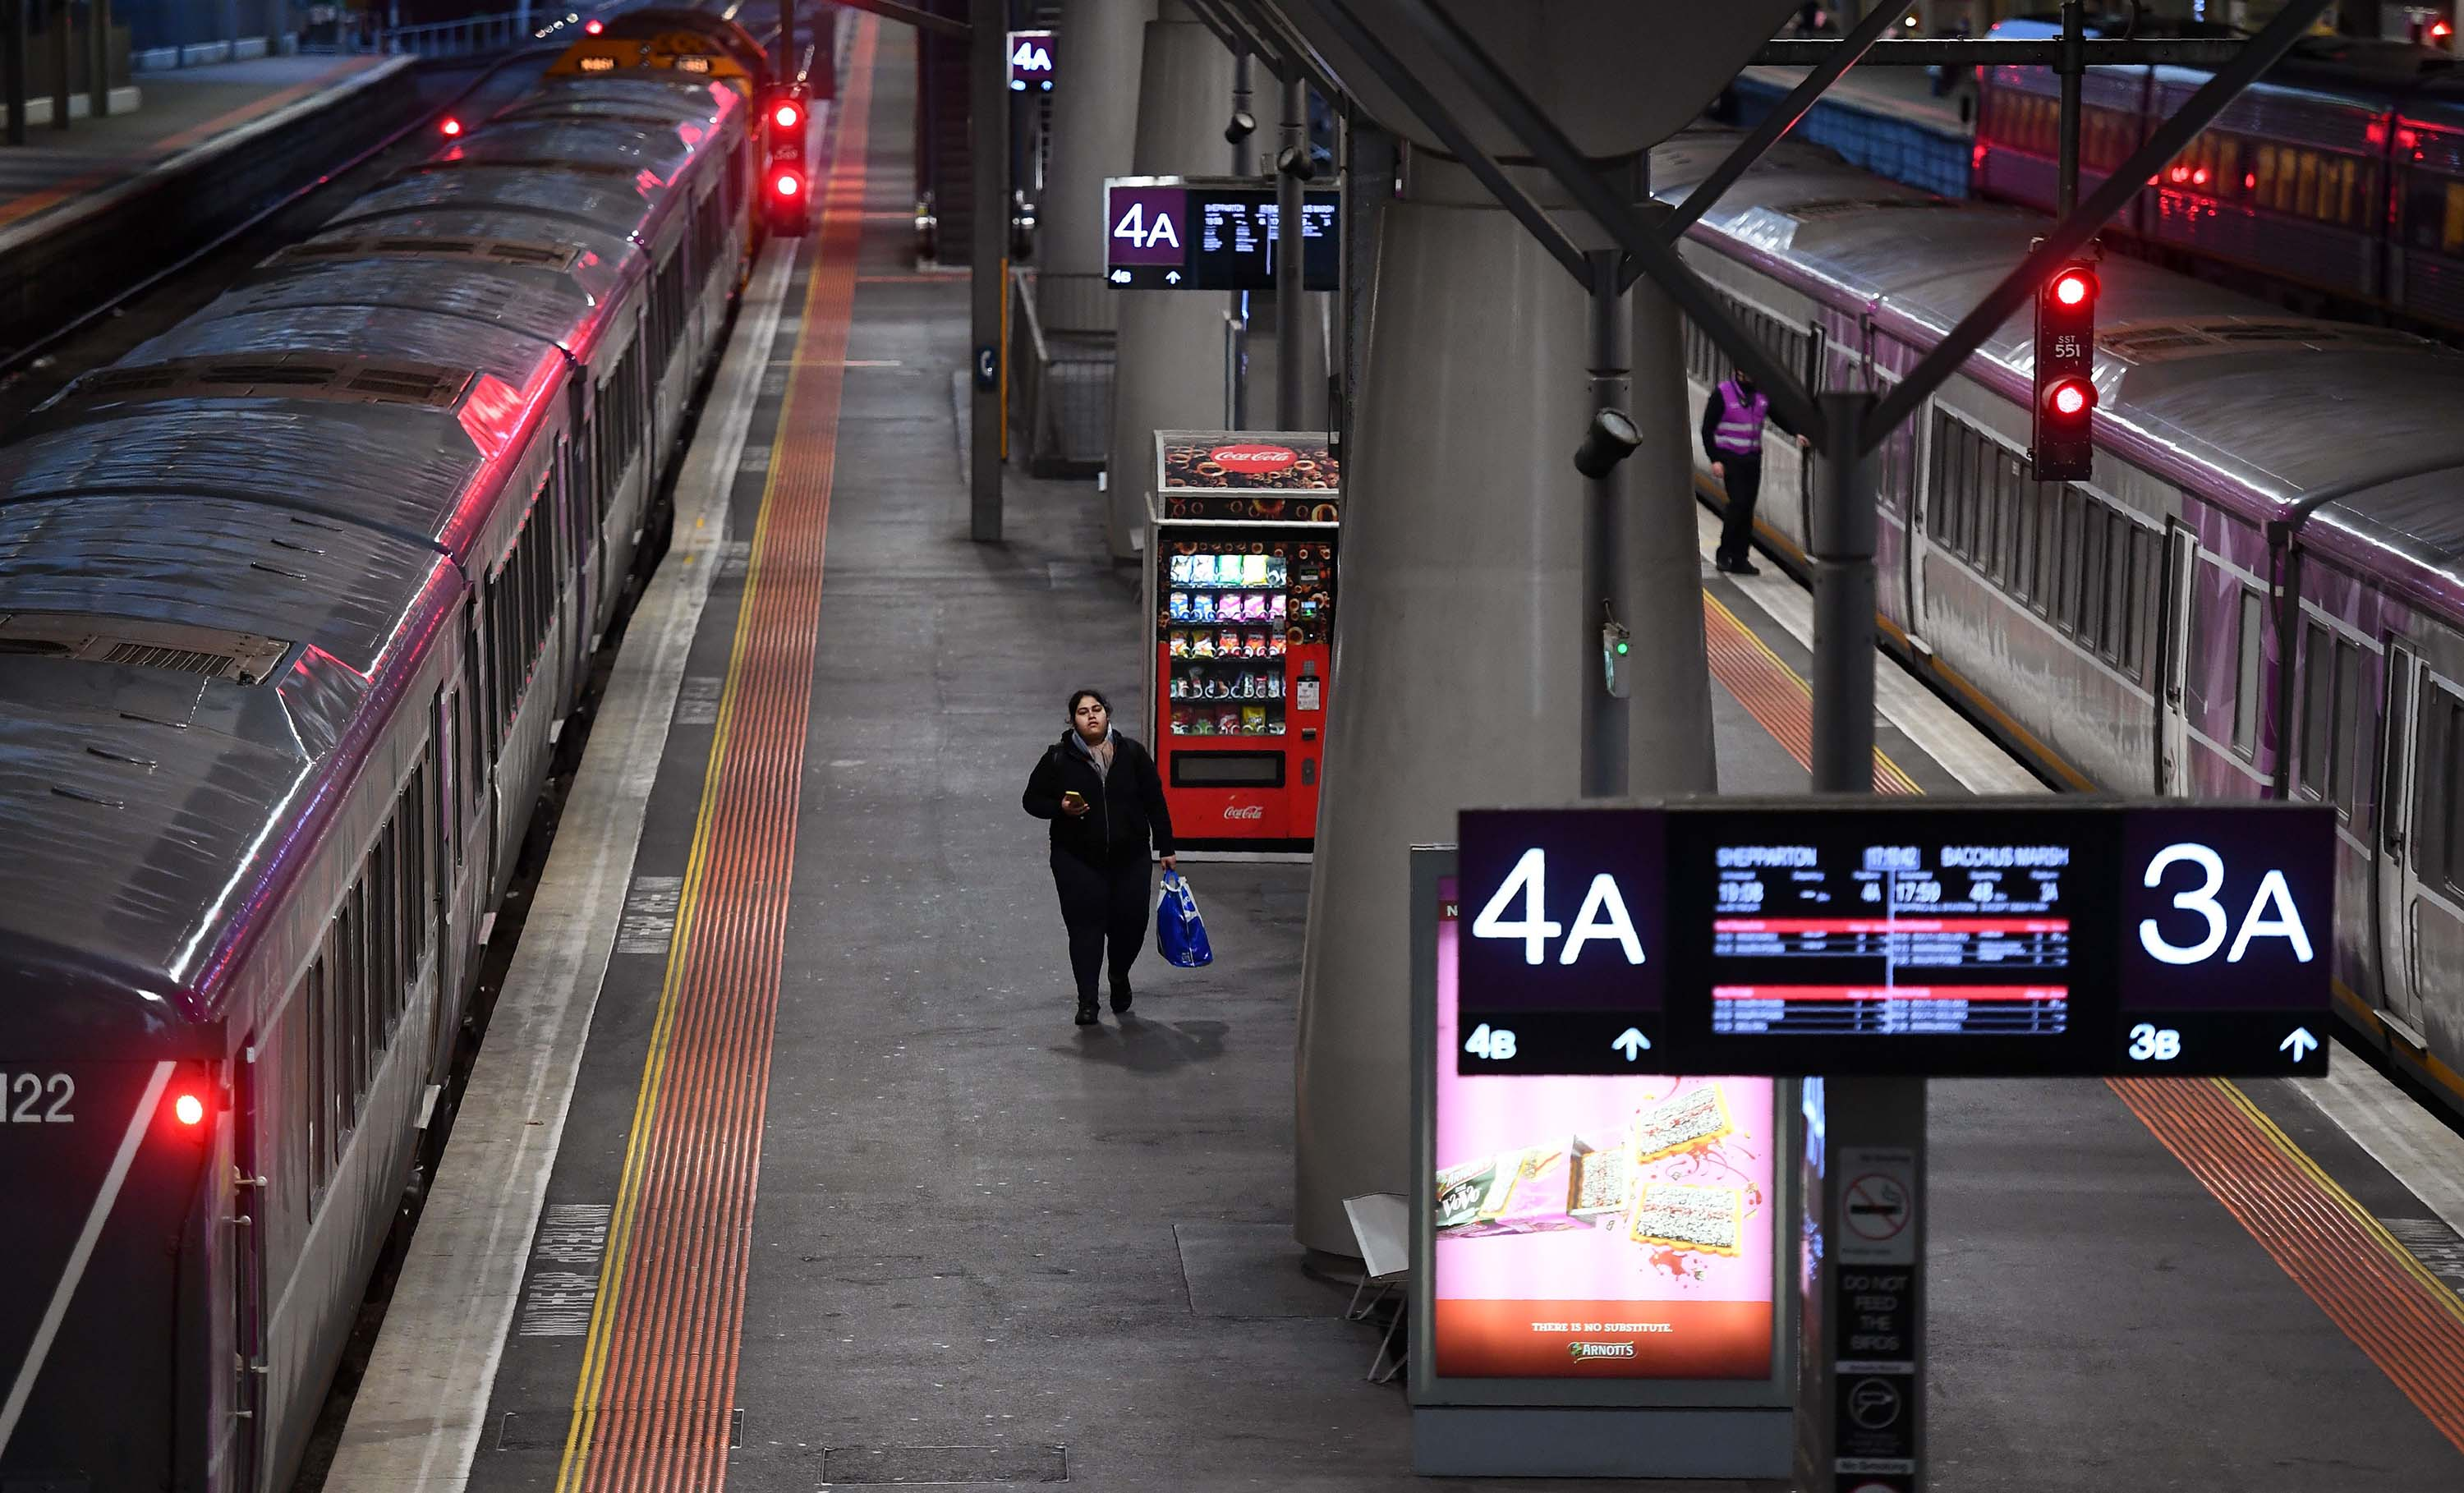 A passenger walks along a platform during rush hour at Melbourne's Southern Cross station on June 30. The Australian state of Victoria has reintroduced lockdown measures on 10 Melbourne suburbs following a recent spike in coronavirus cases.